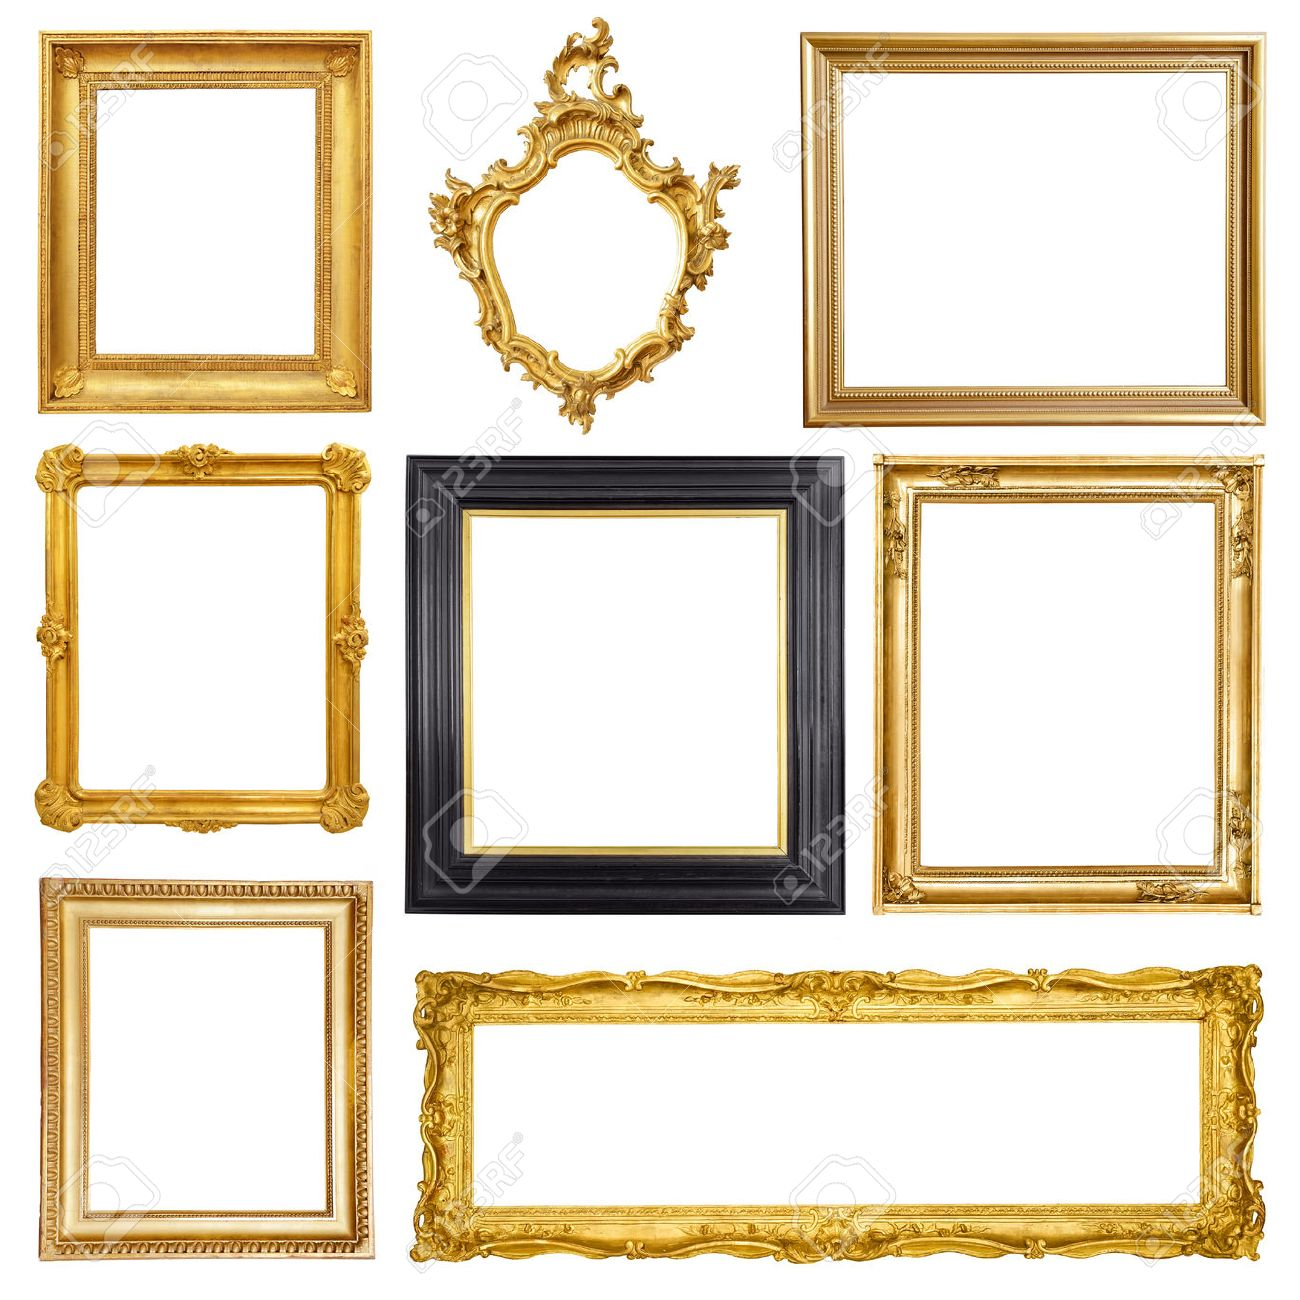 Set of golden vintage frame isolated on white background Stock Photo - 48929600